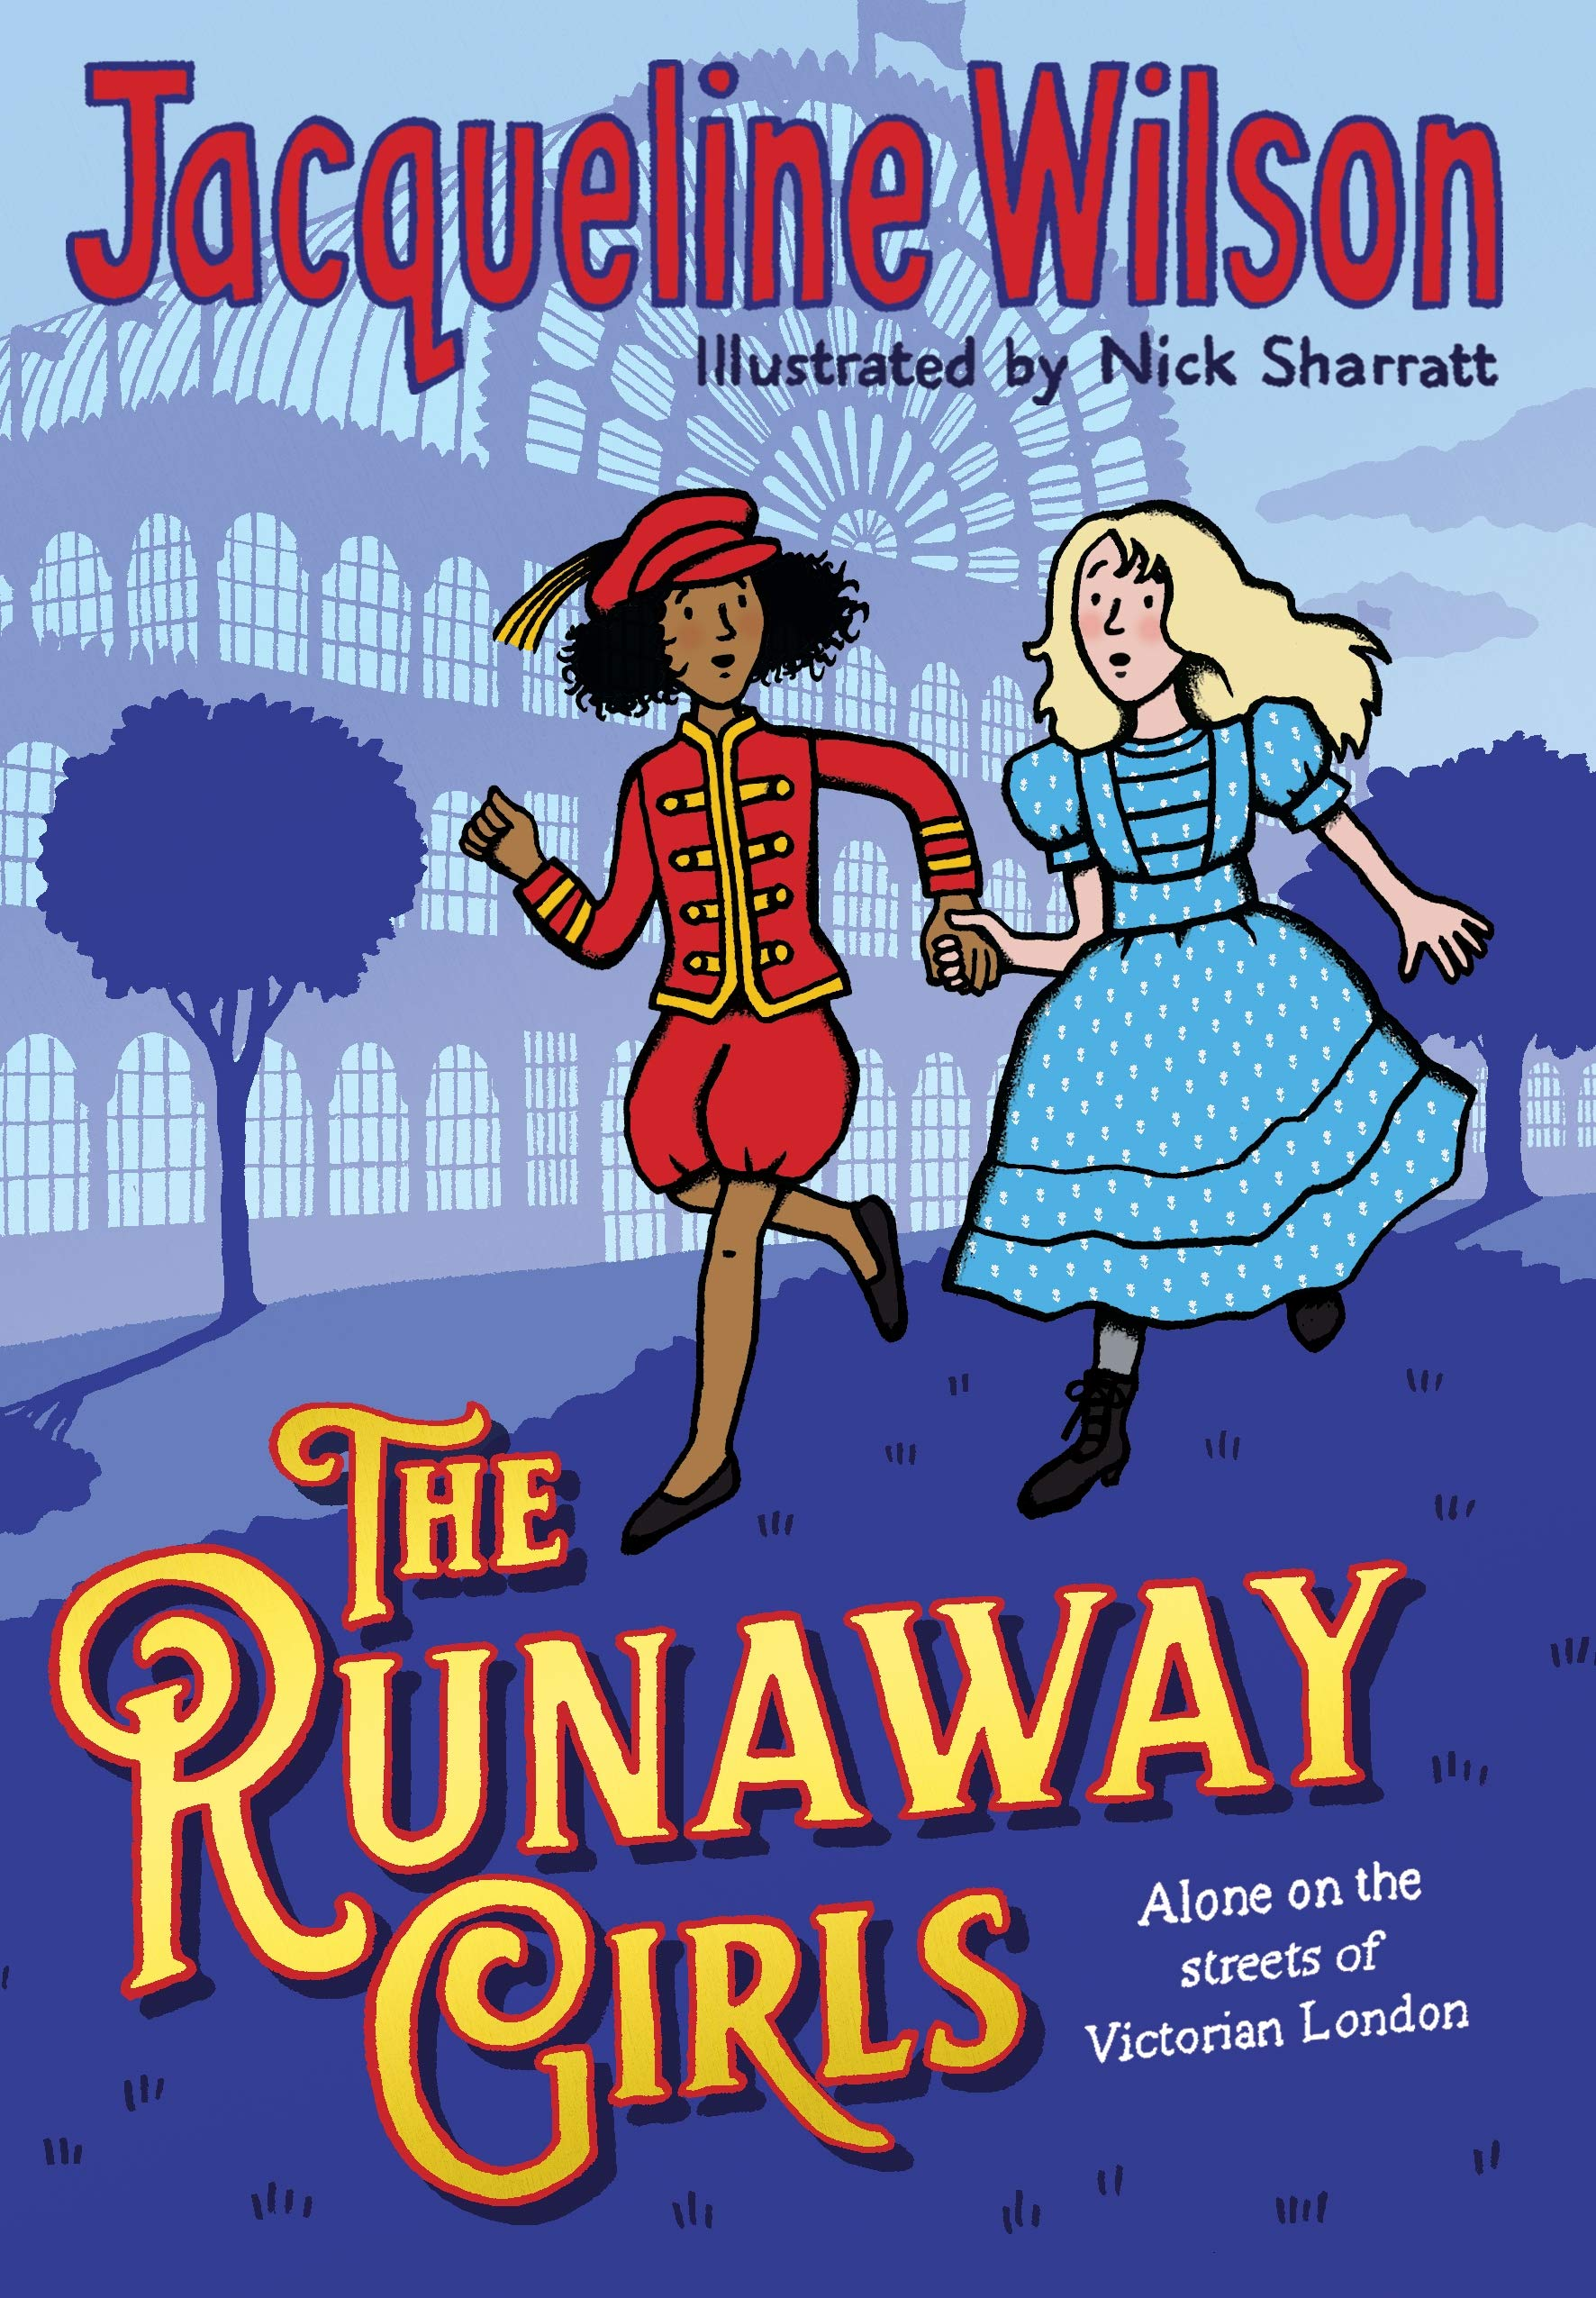 Book Review: The Runaway Girls